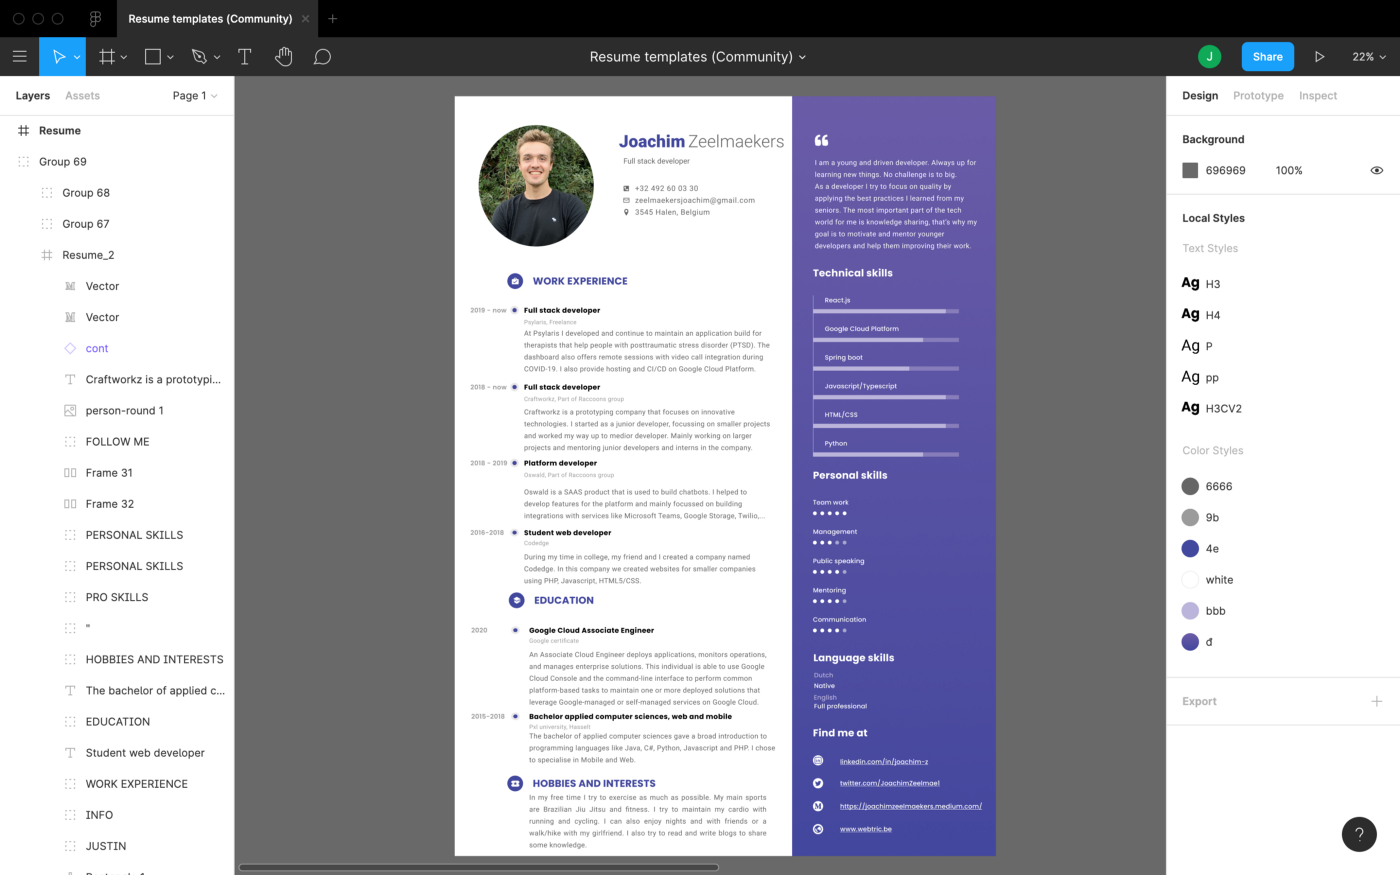 An example of a resume created in Figma